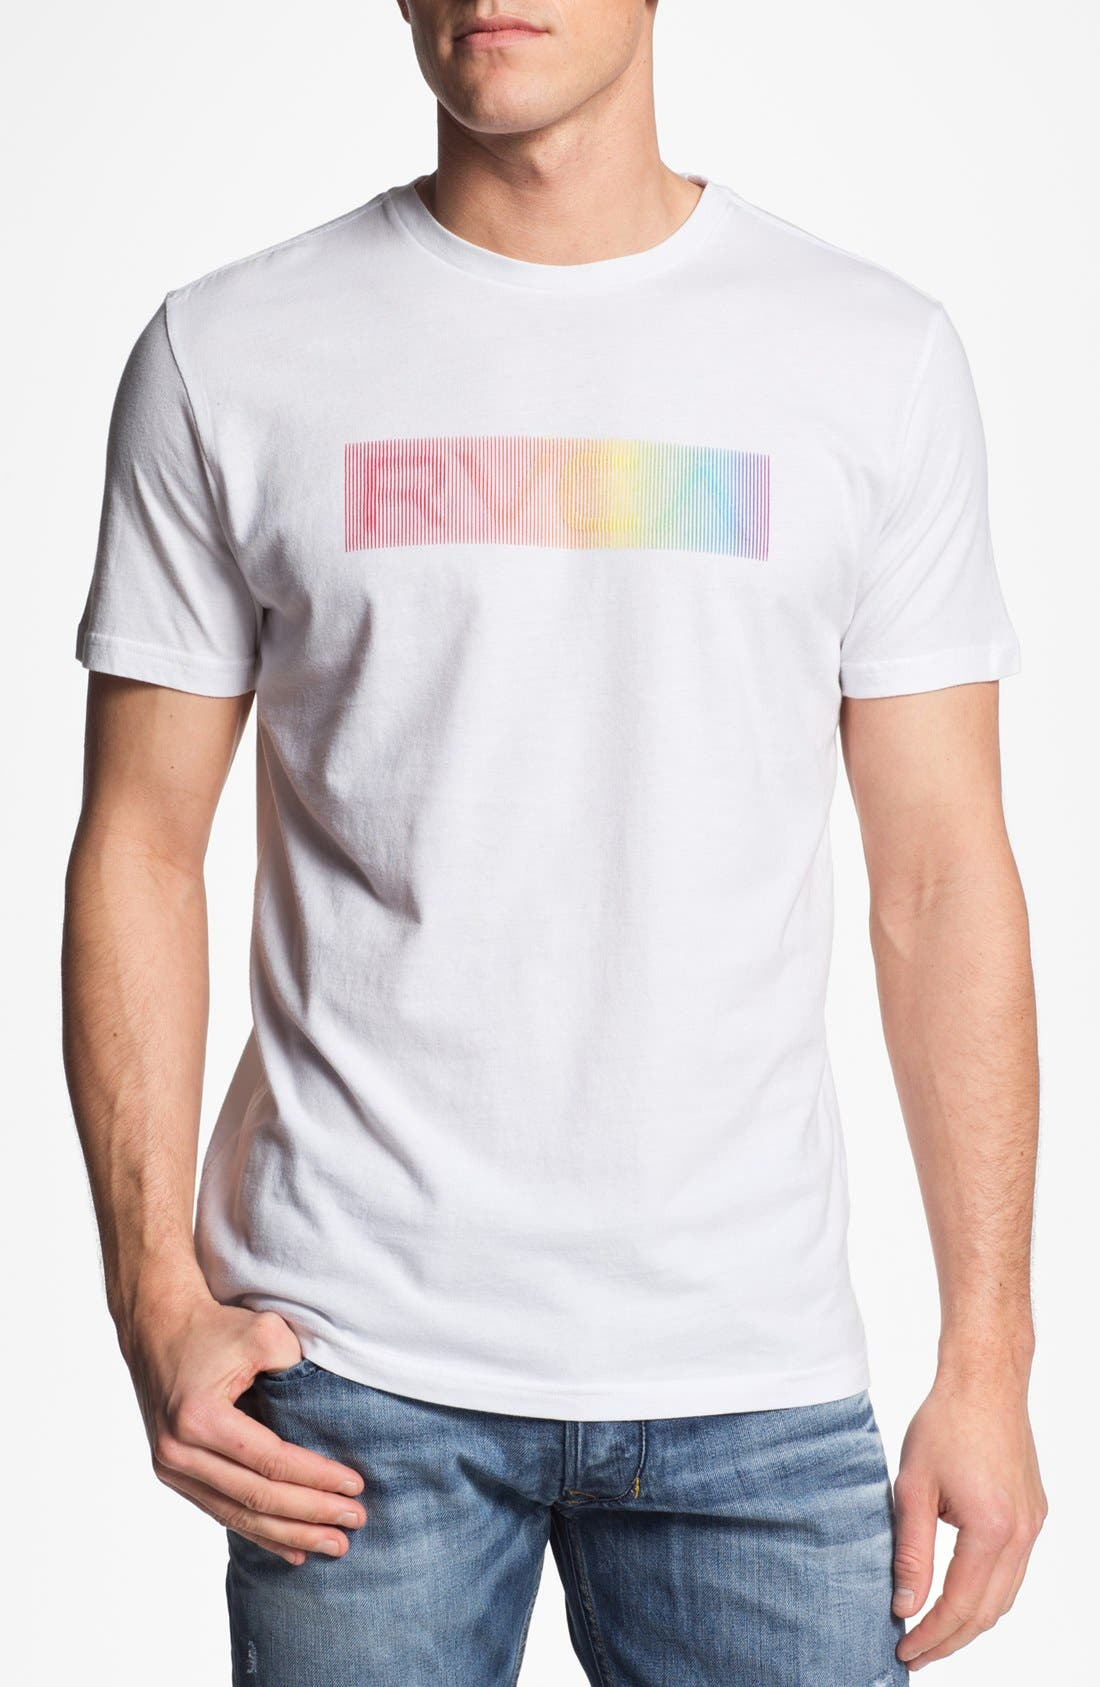 Main Image - RVCA 'Illusions' Graphic T-Shirt